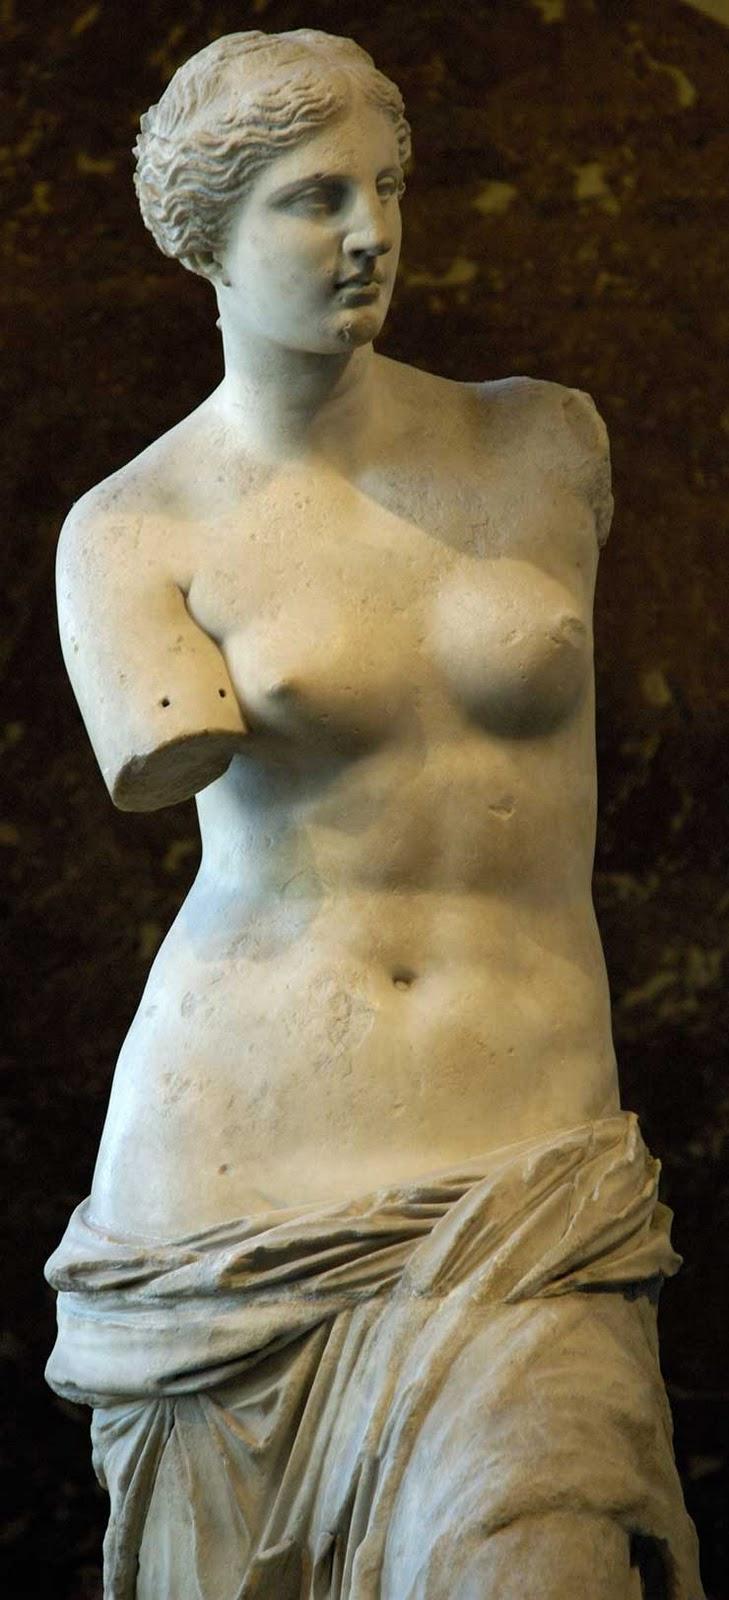 The Arts And Beauty Of The Renaissance The Venus De Milo And Statue Of David